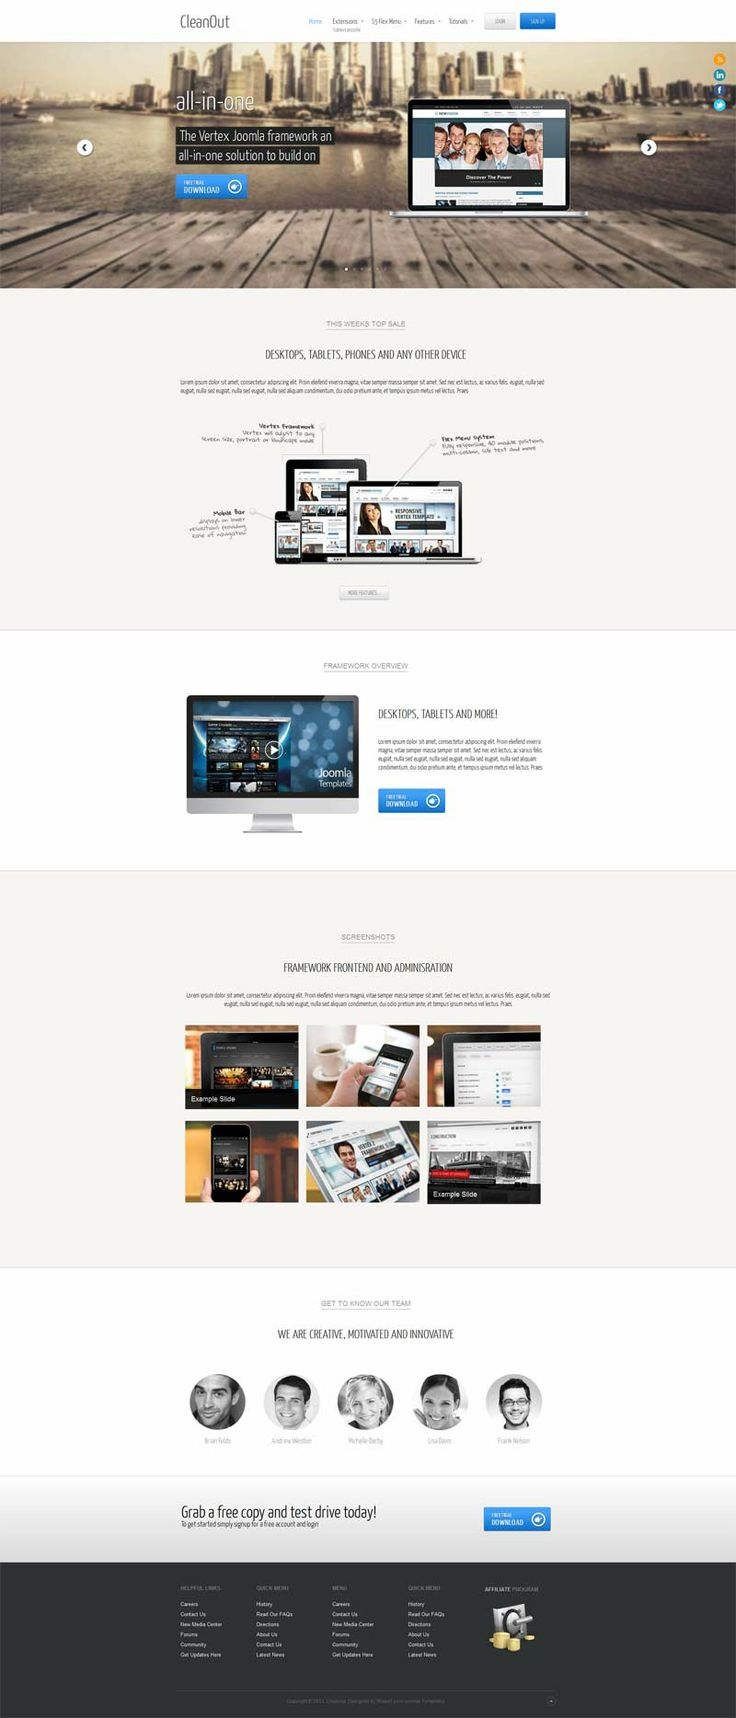 CleanOut Joomla Template for Mobile App Promoting